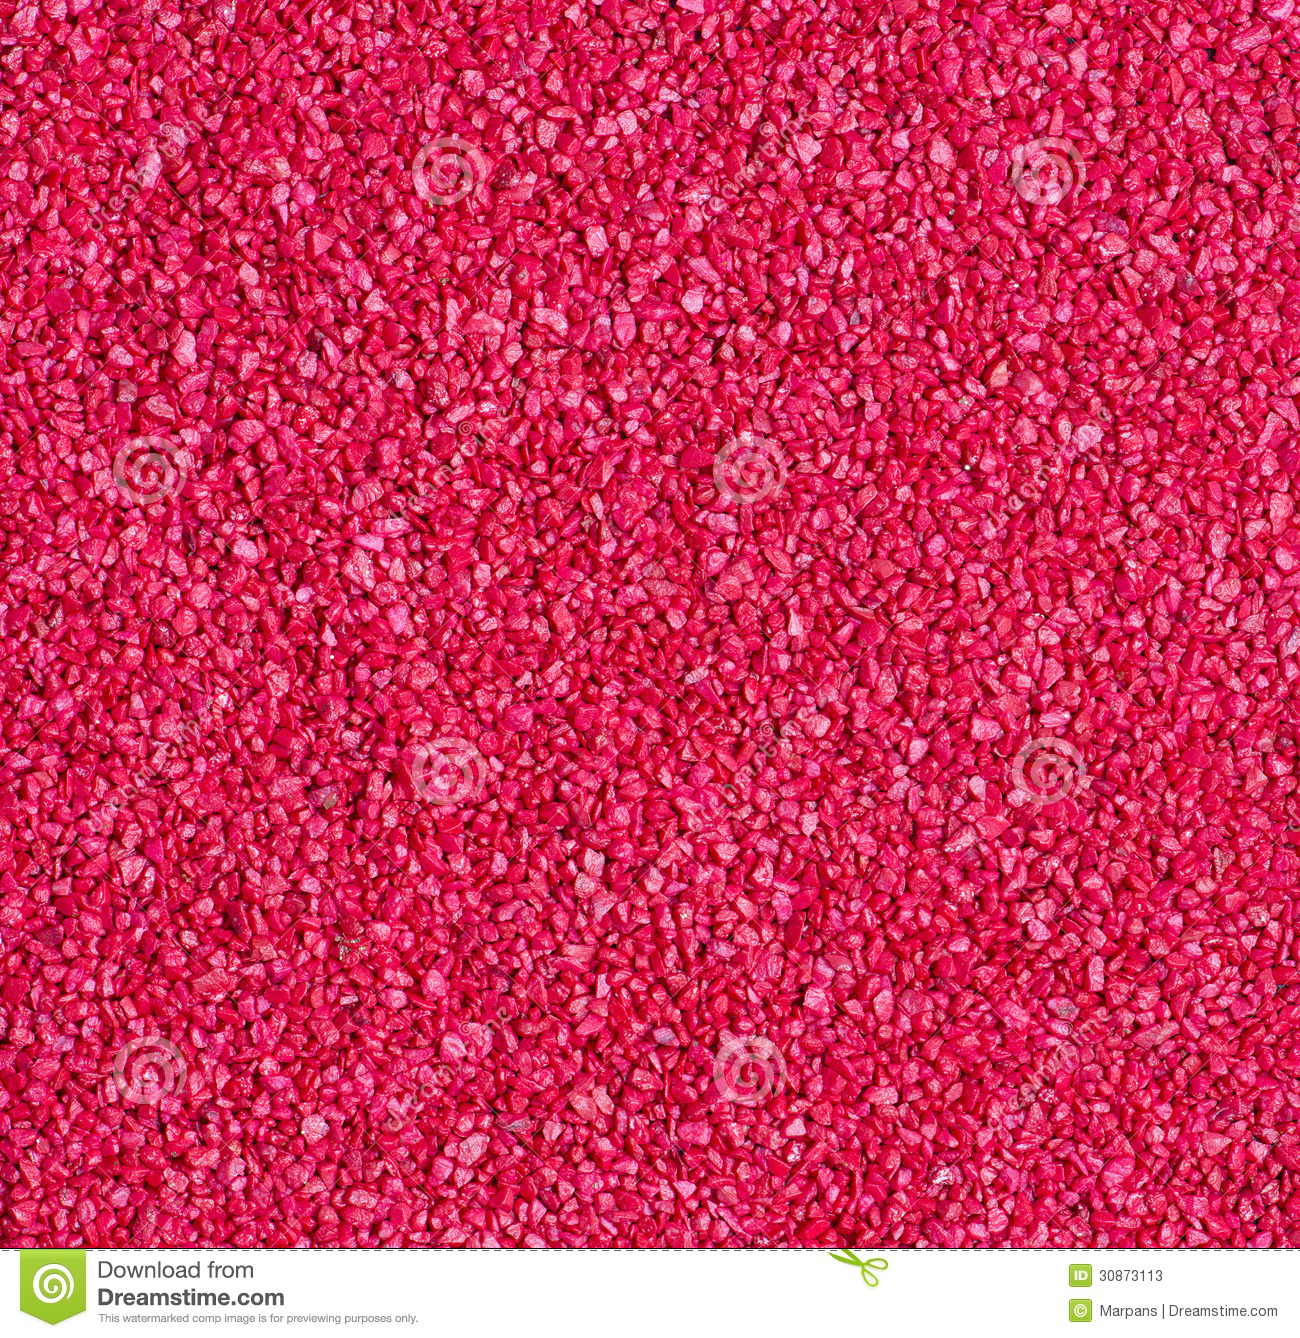 Red Stone Texture : Seamless red stone texture imgkid the image